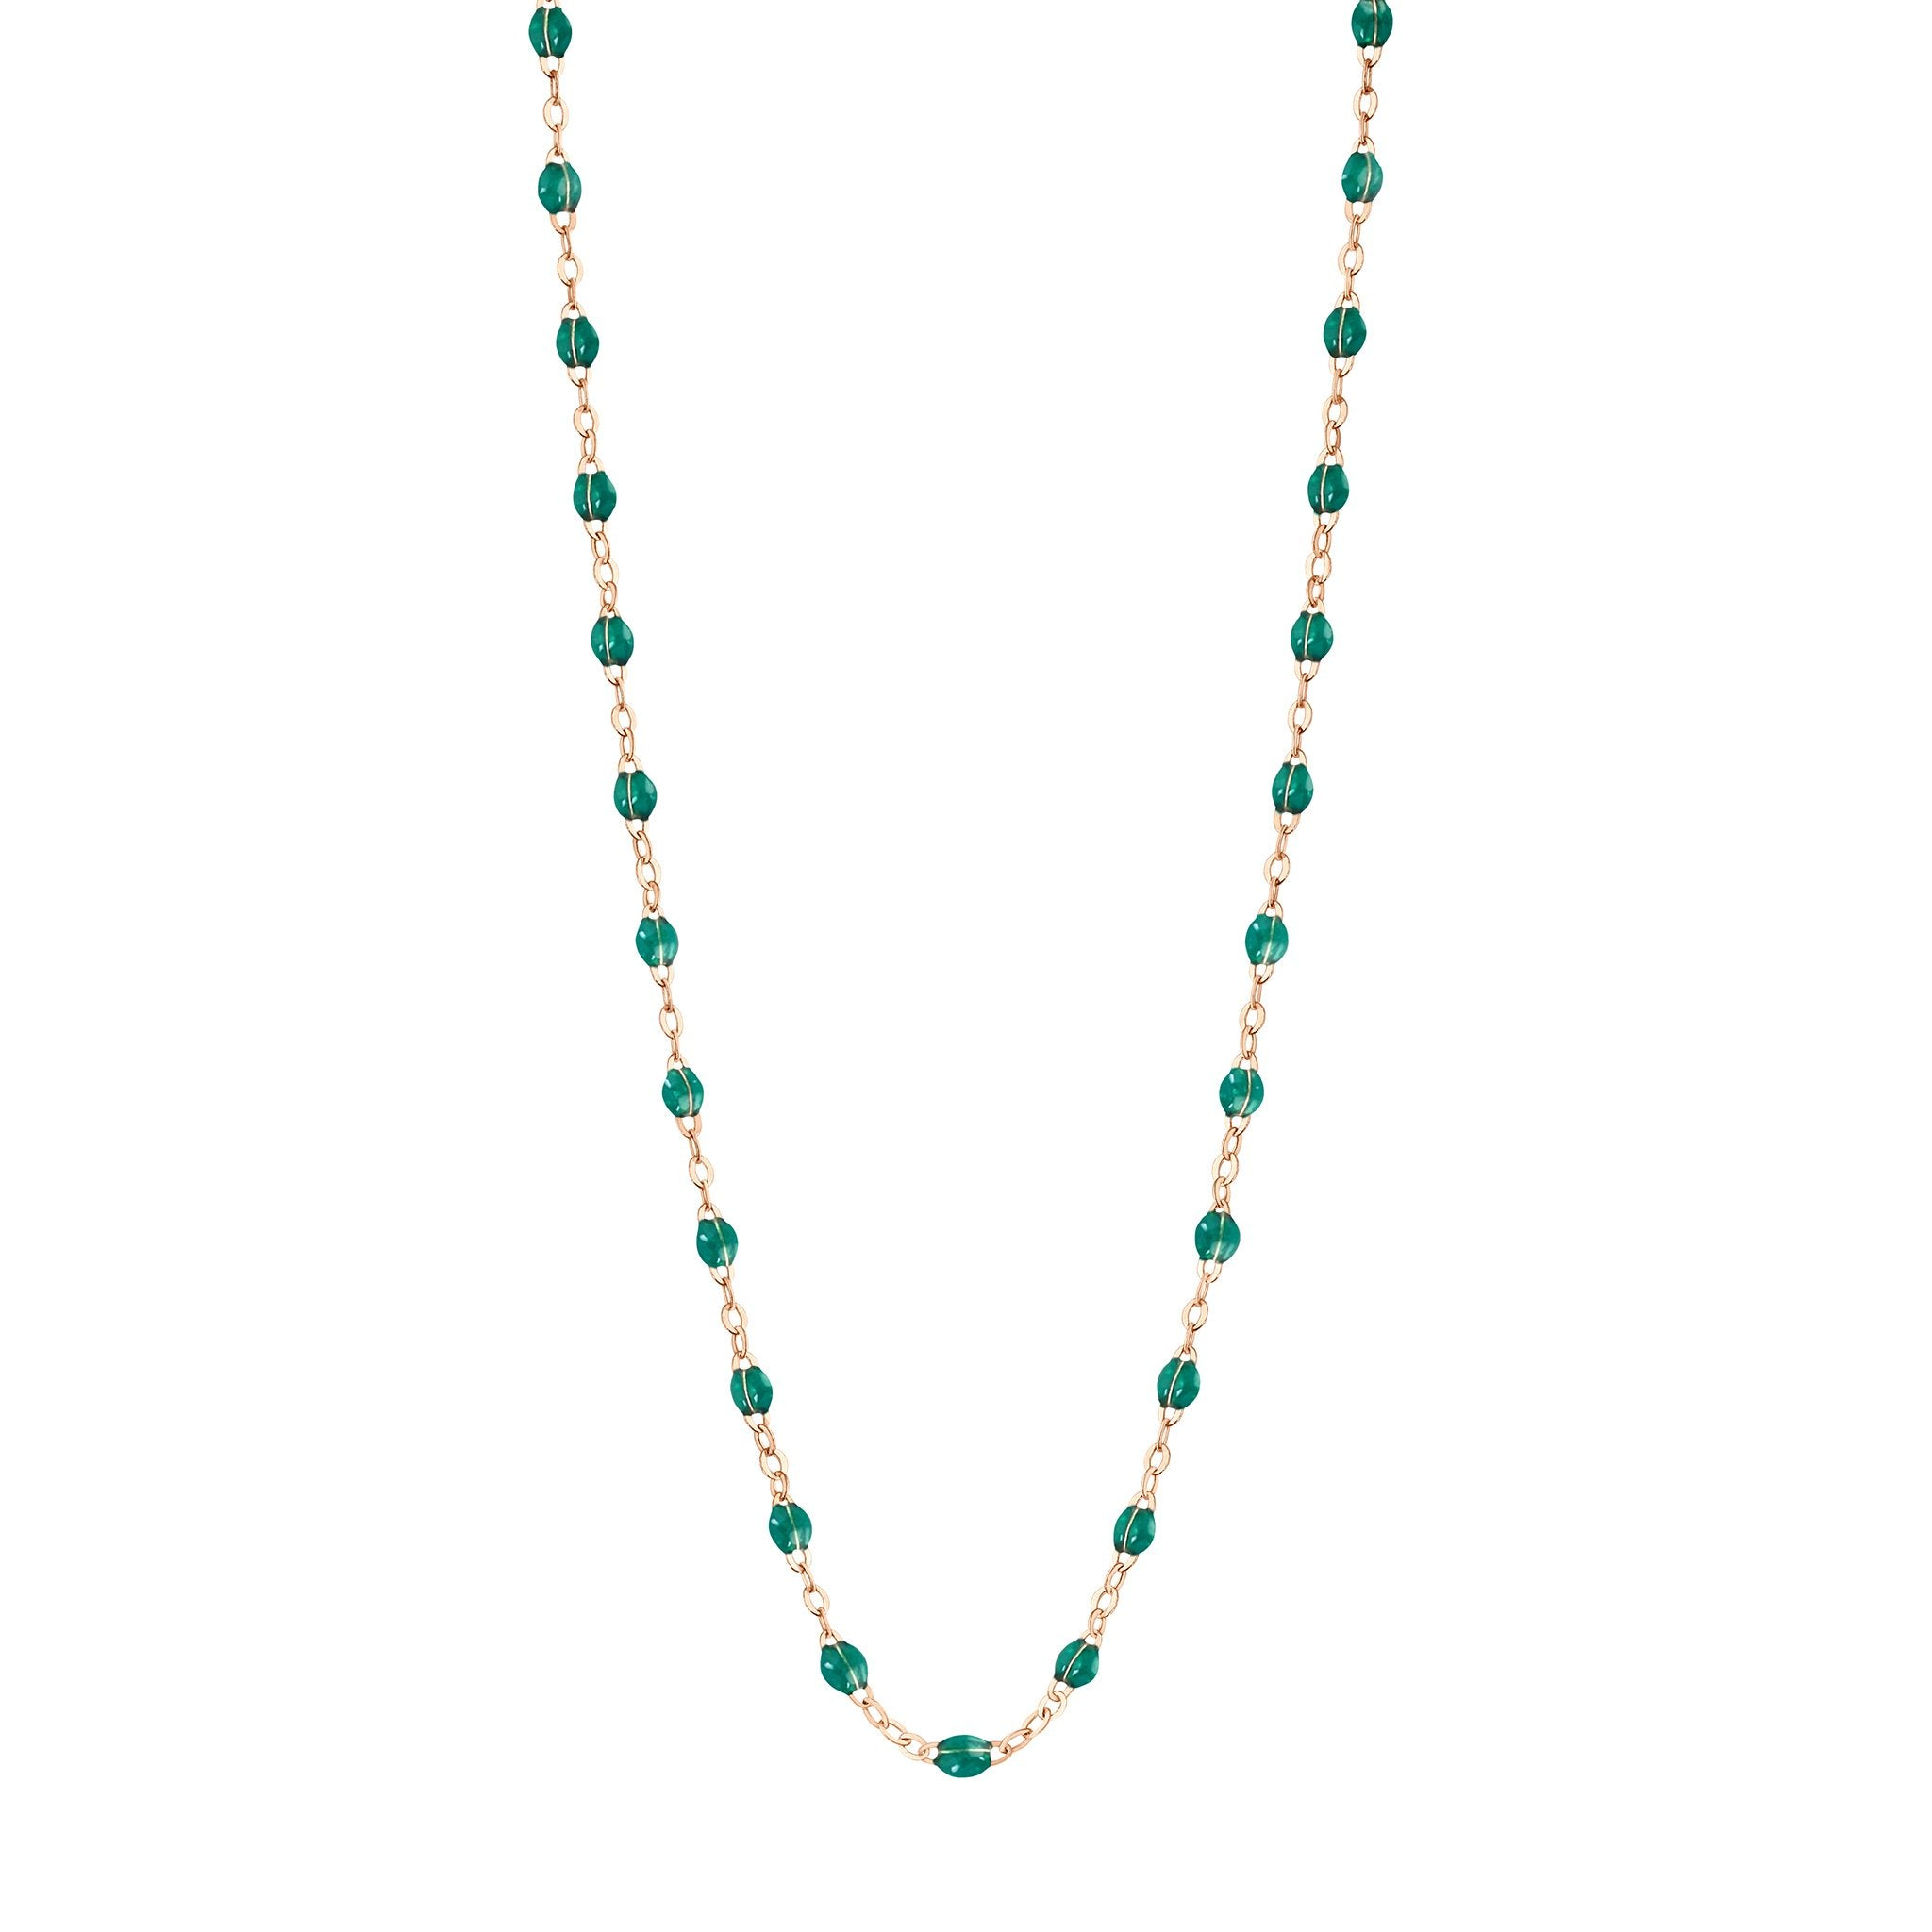 Gigi Clozeau - Classic Gigi Emerald necklace, Rose Gold, 19.7""